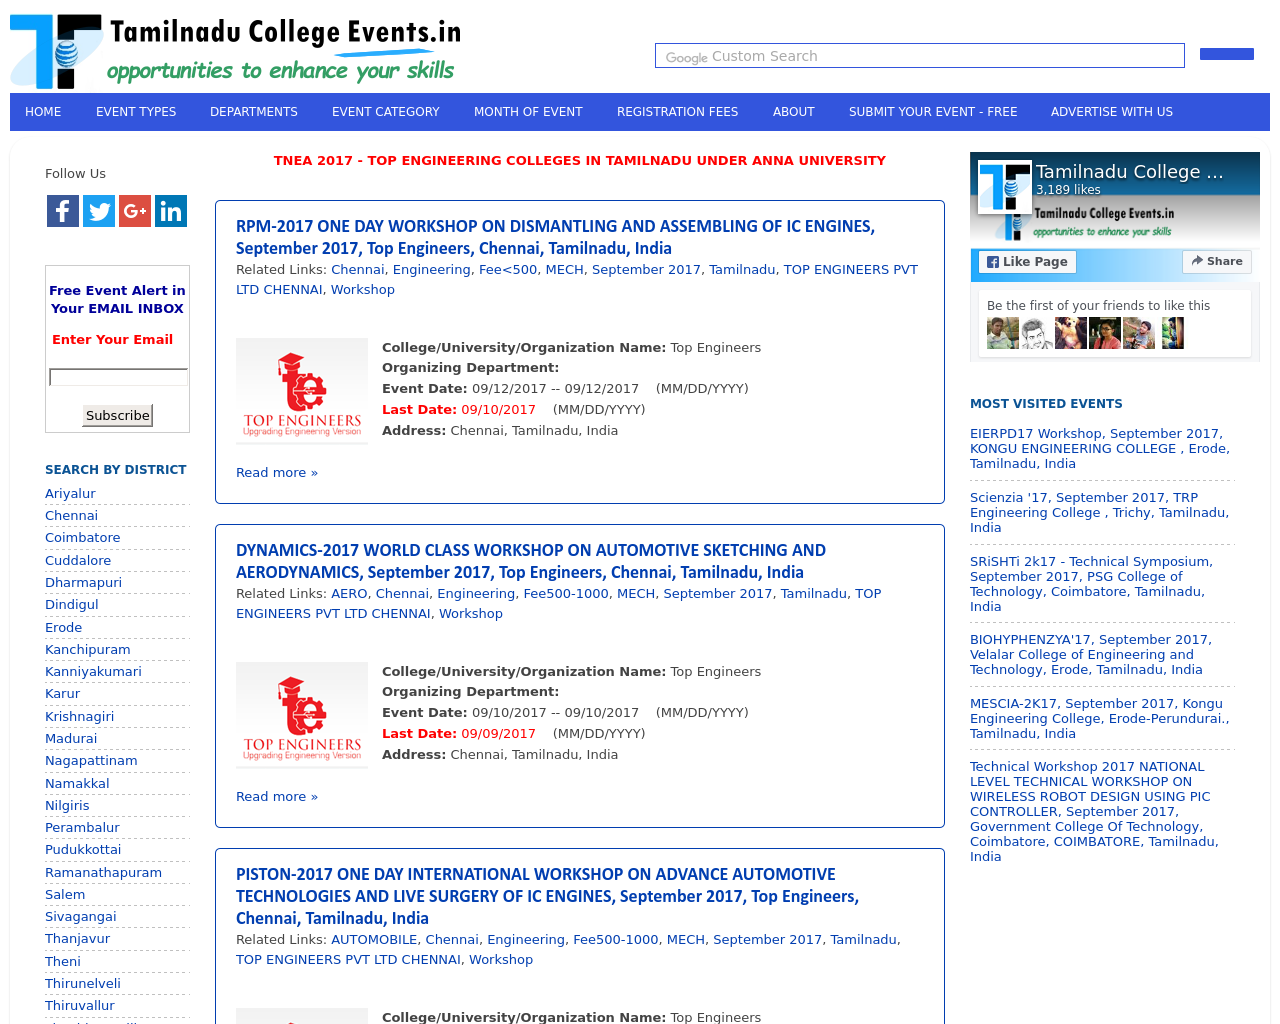 Tamilnadu-College-Events.in-Advertising-Reviews-Pricing